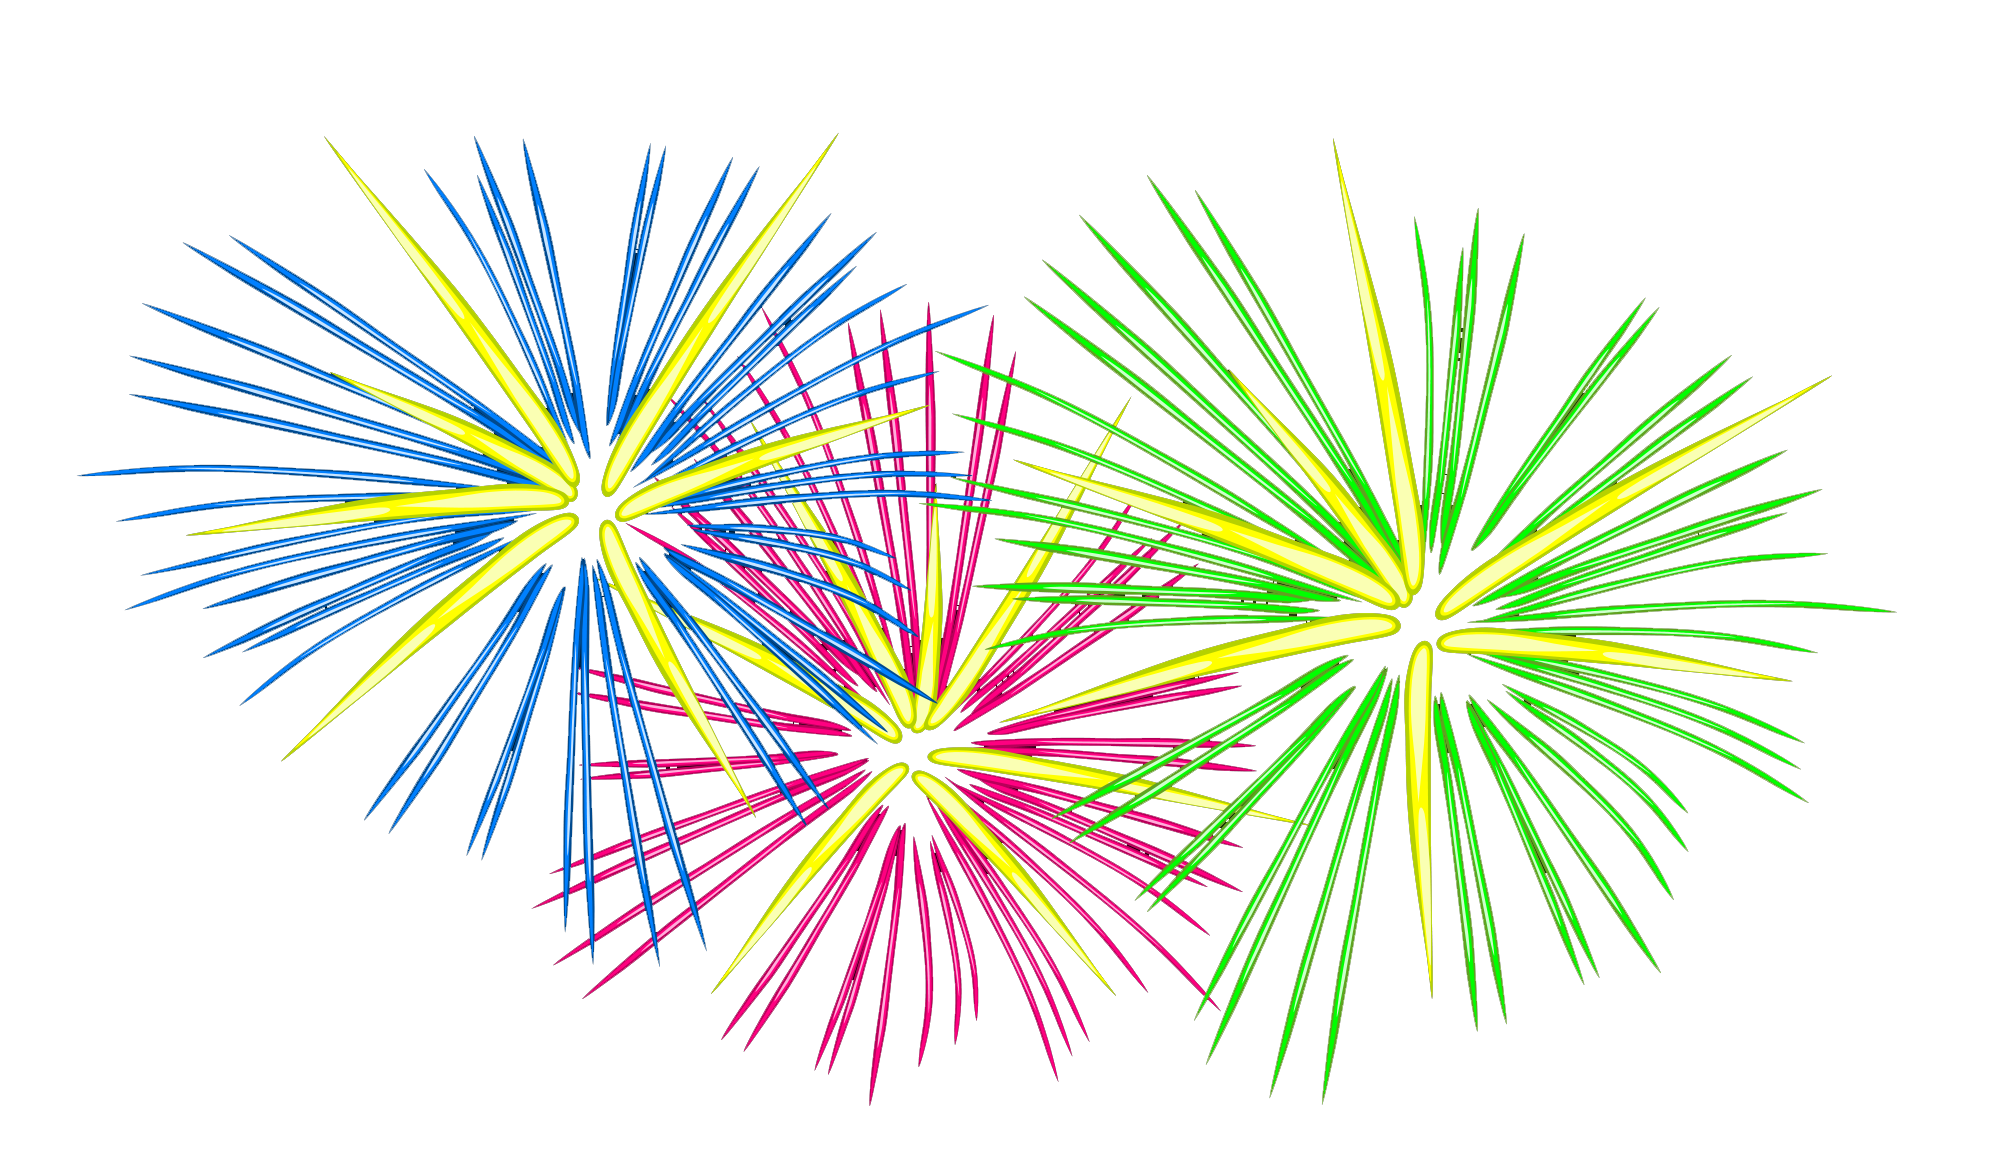 Description Fireworks 2 Png-Description Fireworks 2 Png-12